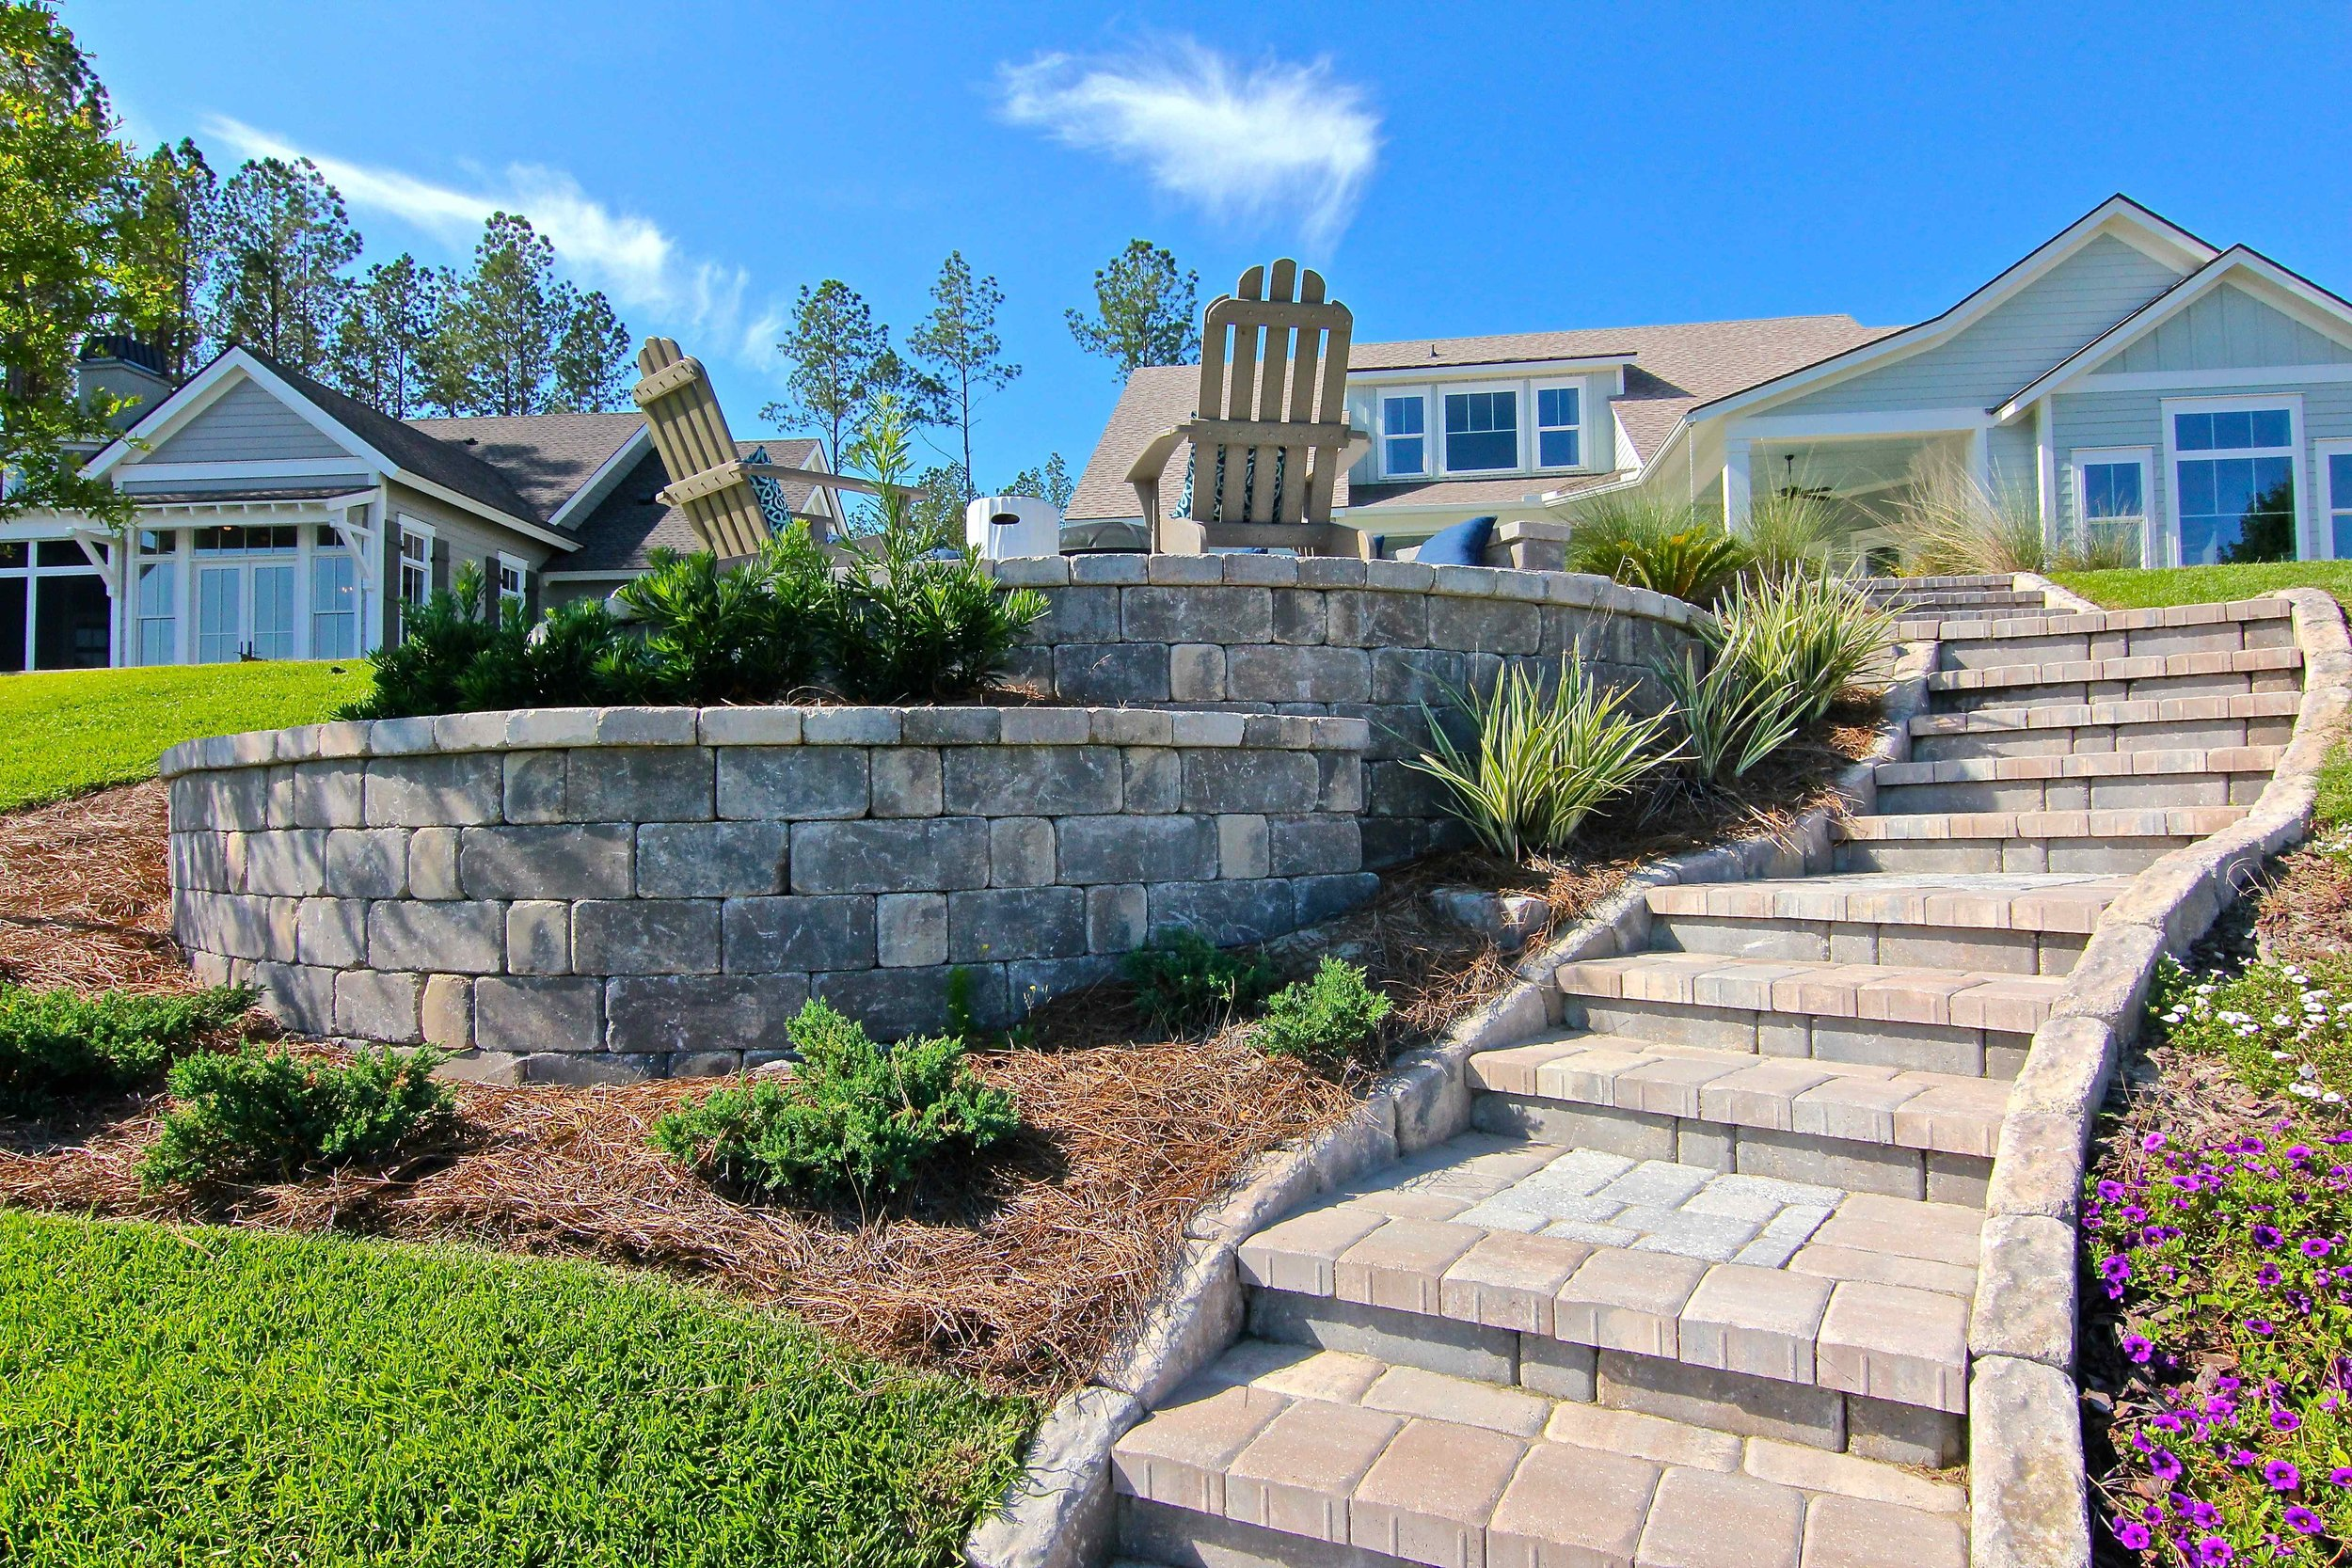 Small backyards can be the perfect place to design a paver patio. Pavers and wall block have the ability to be used vertically, allowing a small space to feel larger and more inviting.